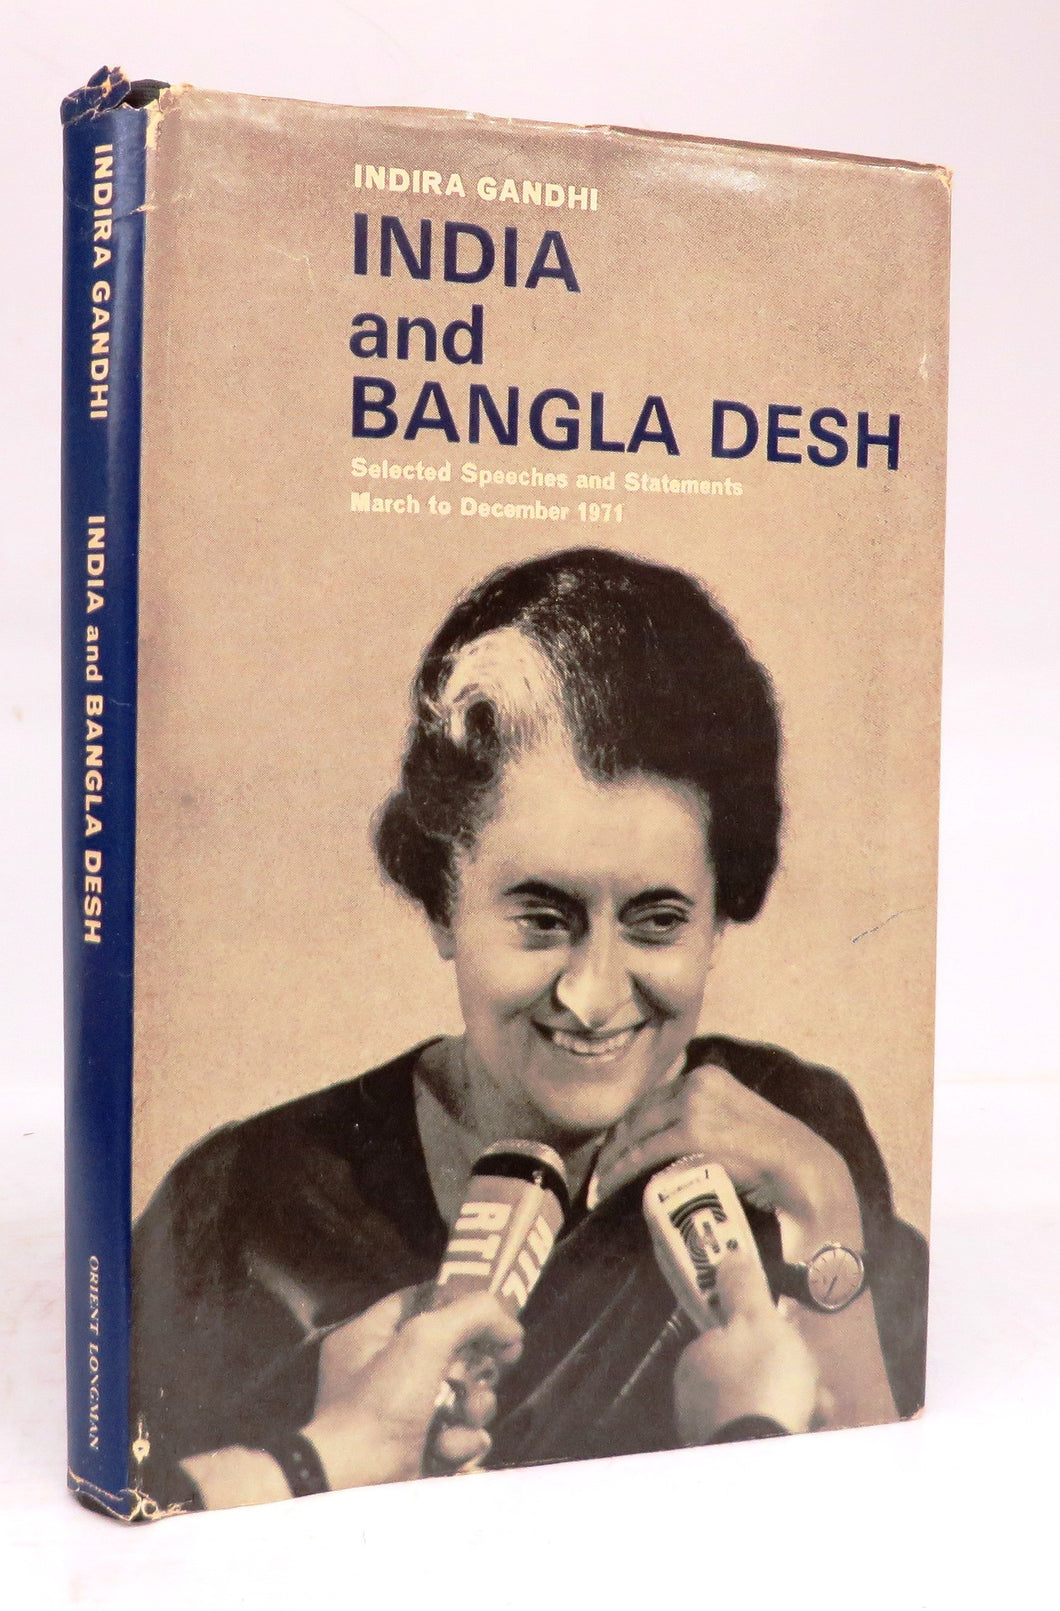 India and Bangla Desh: Selected Speeches and Statements March to December 1971